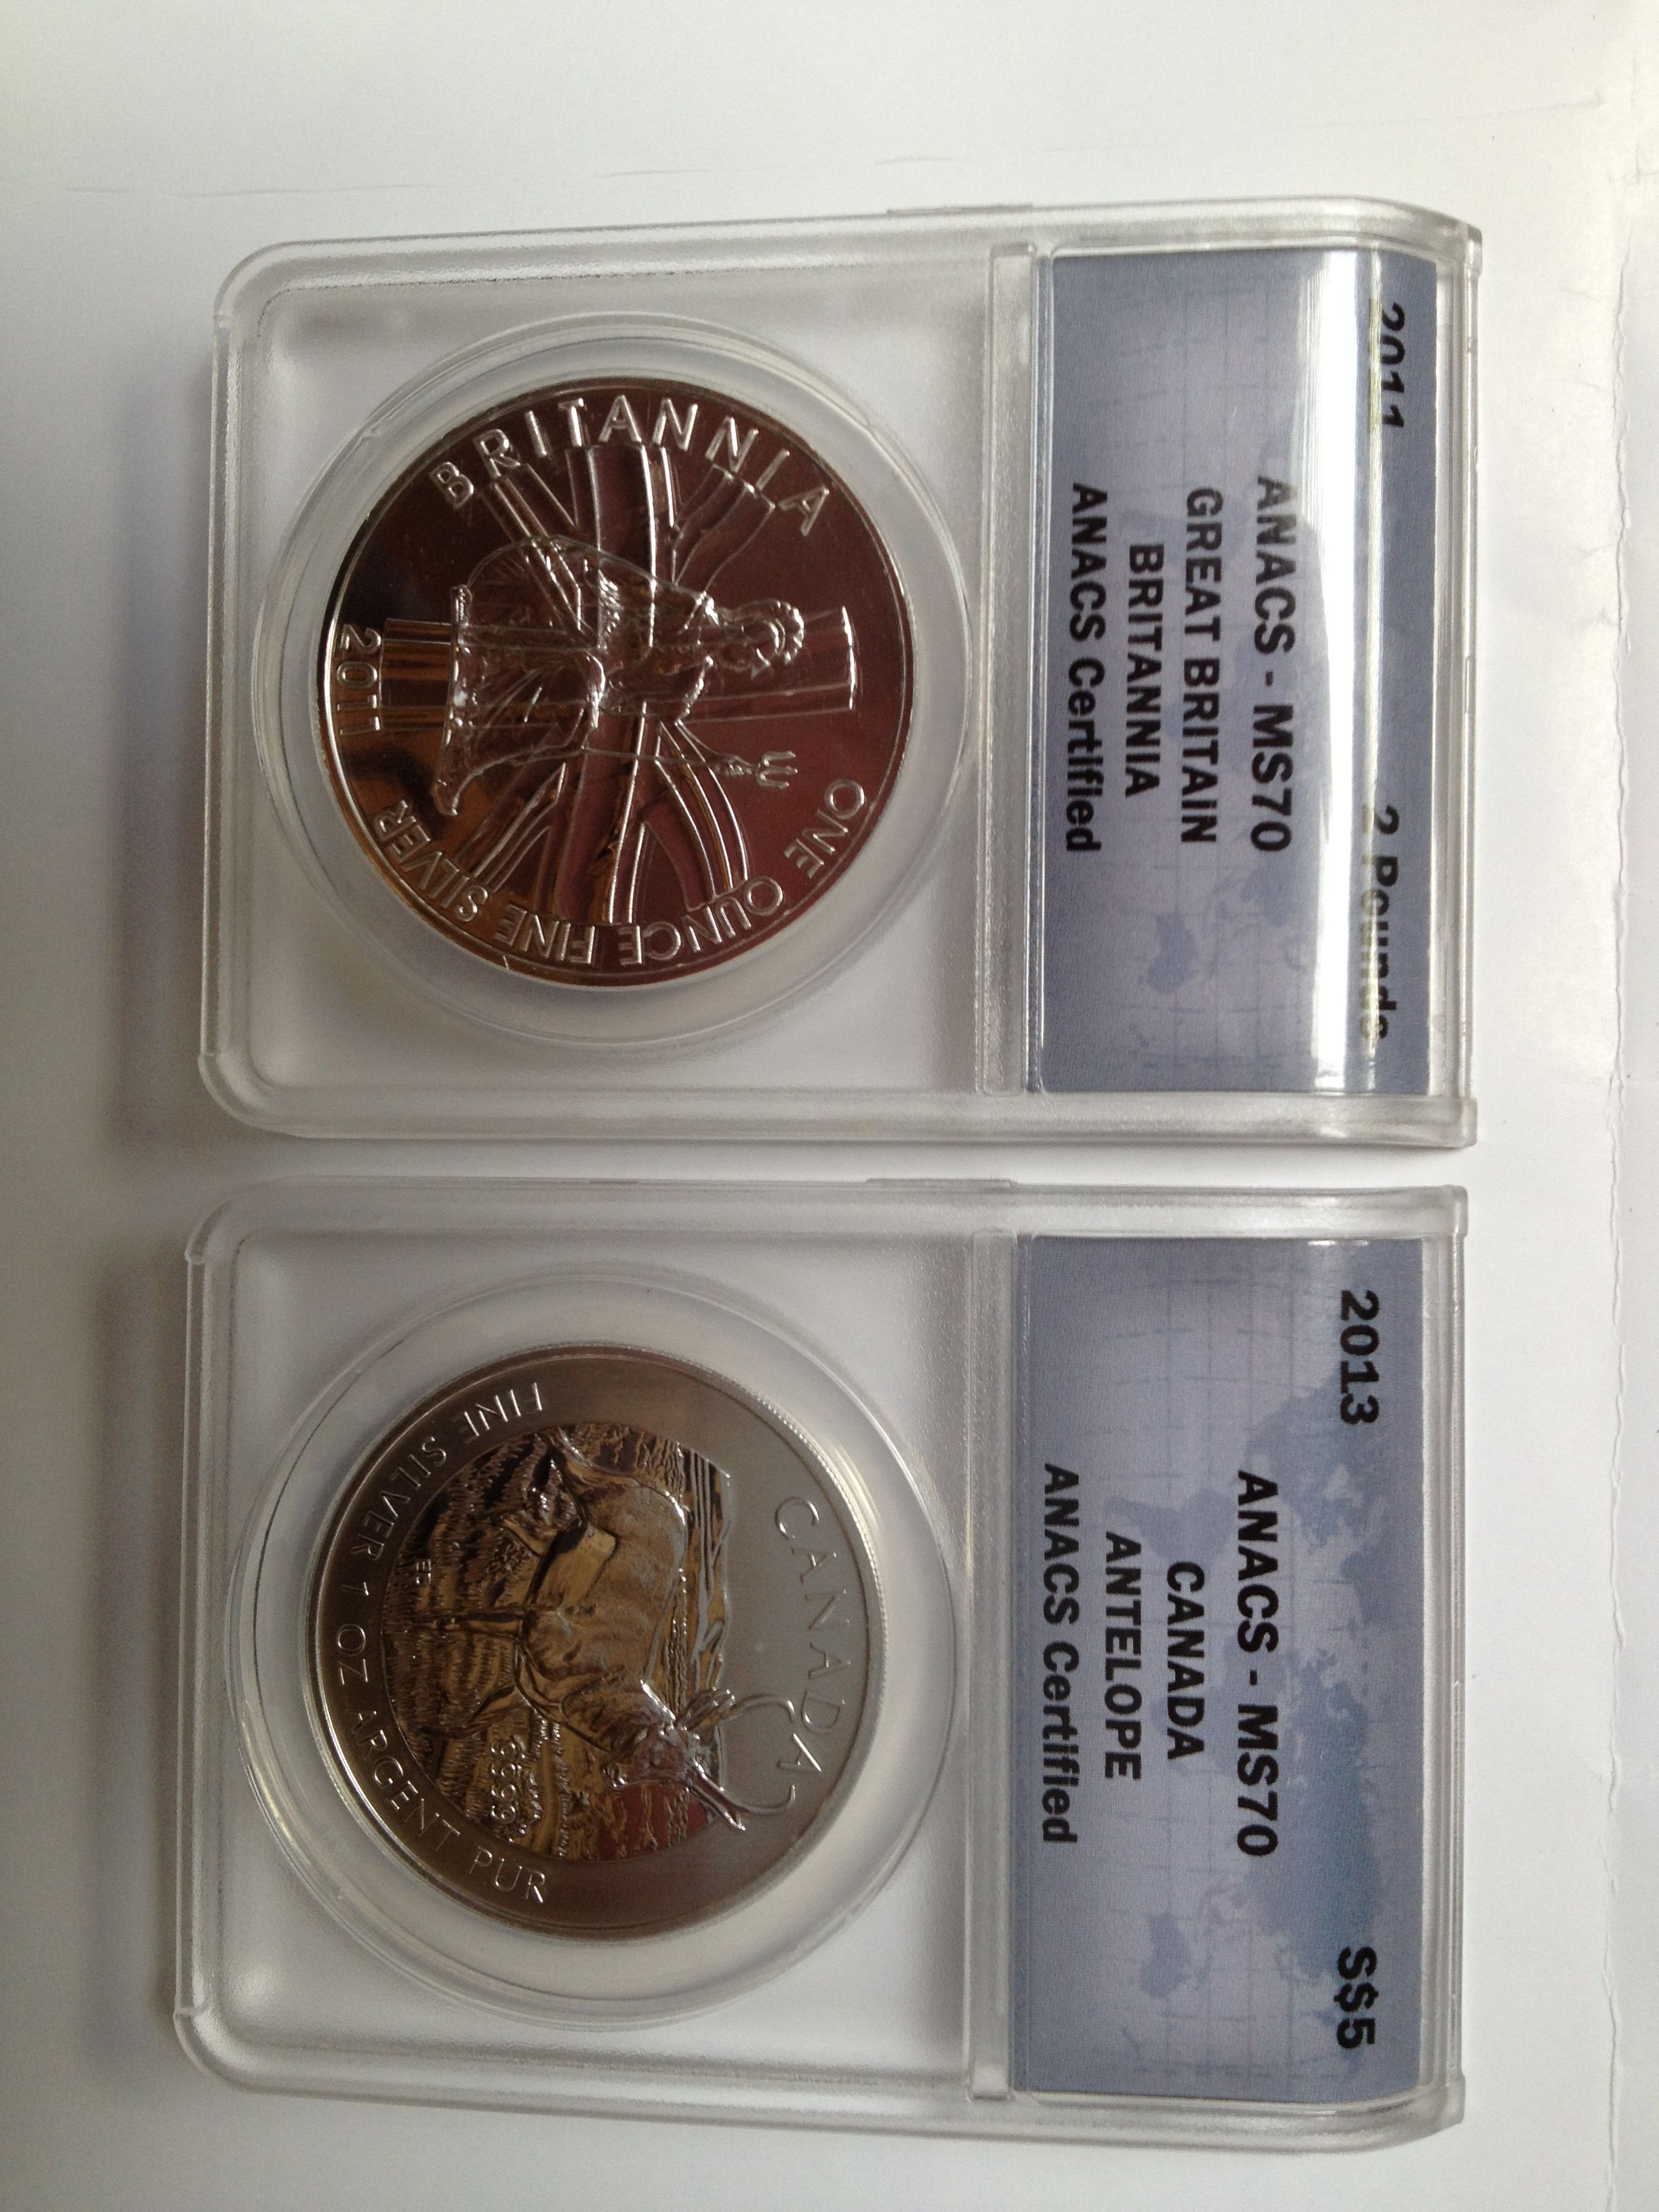 MS70 Graded pure silver coins from Numis